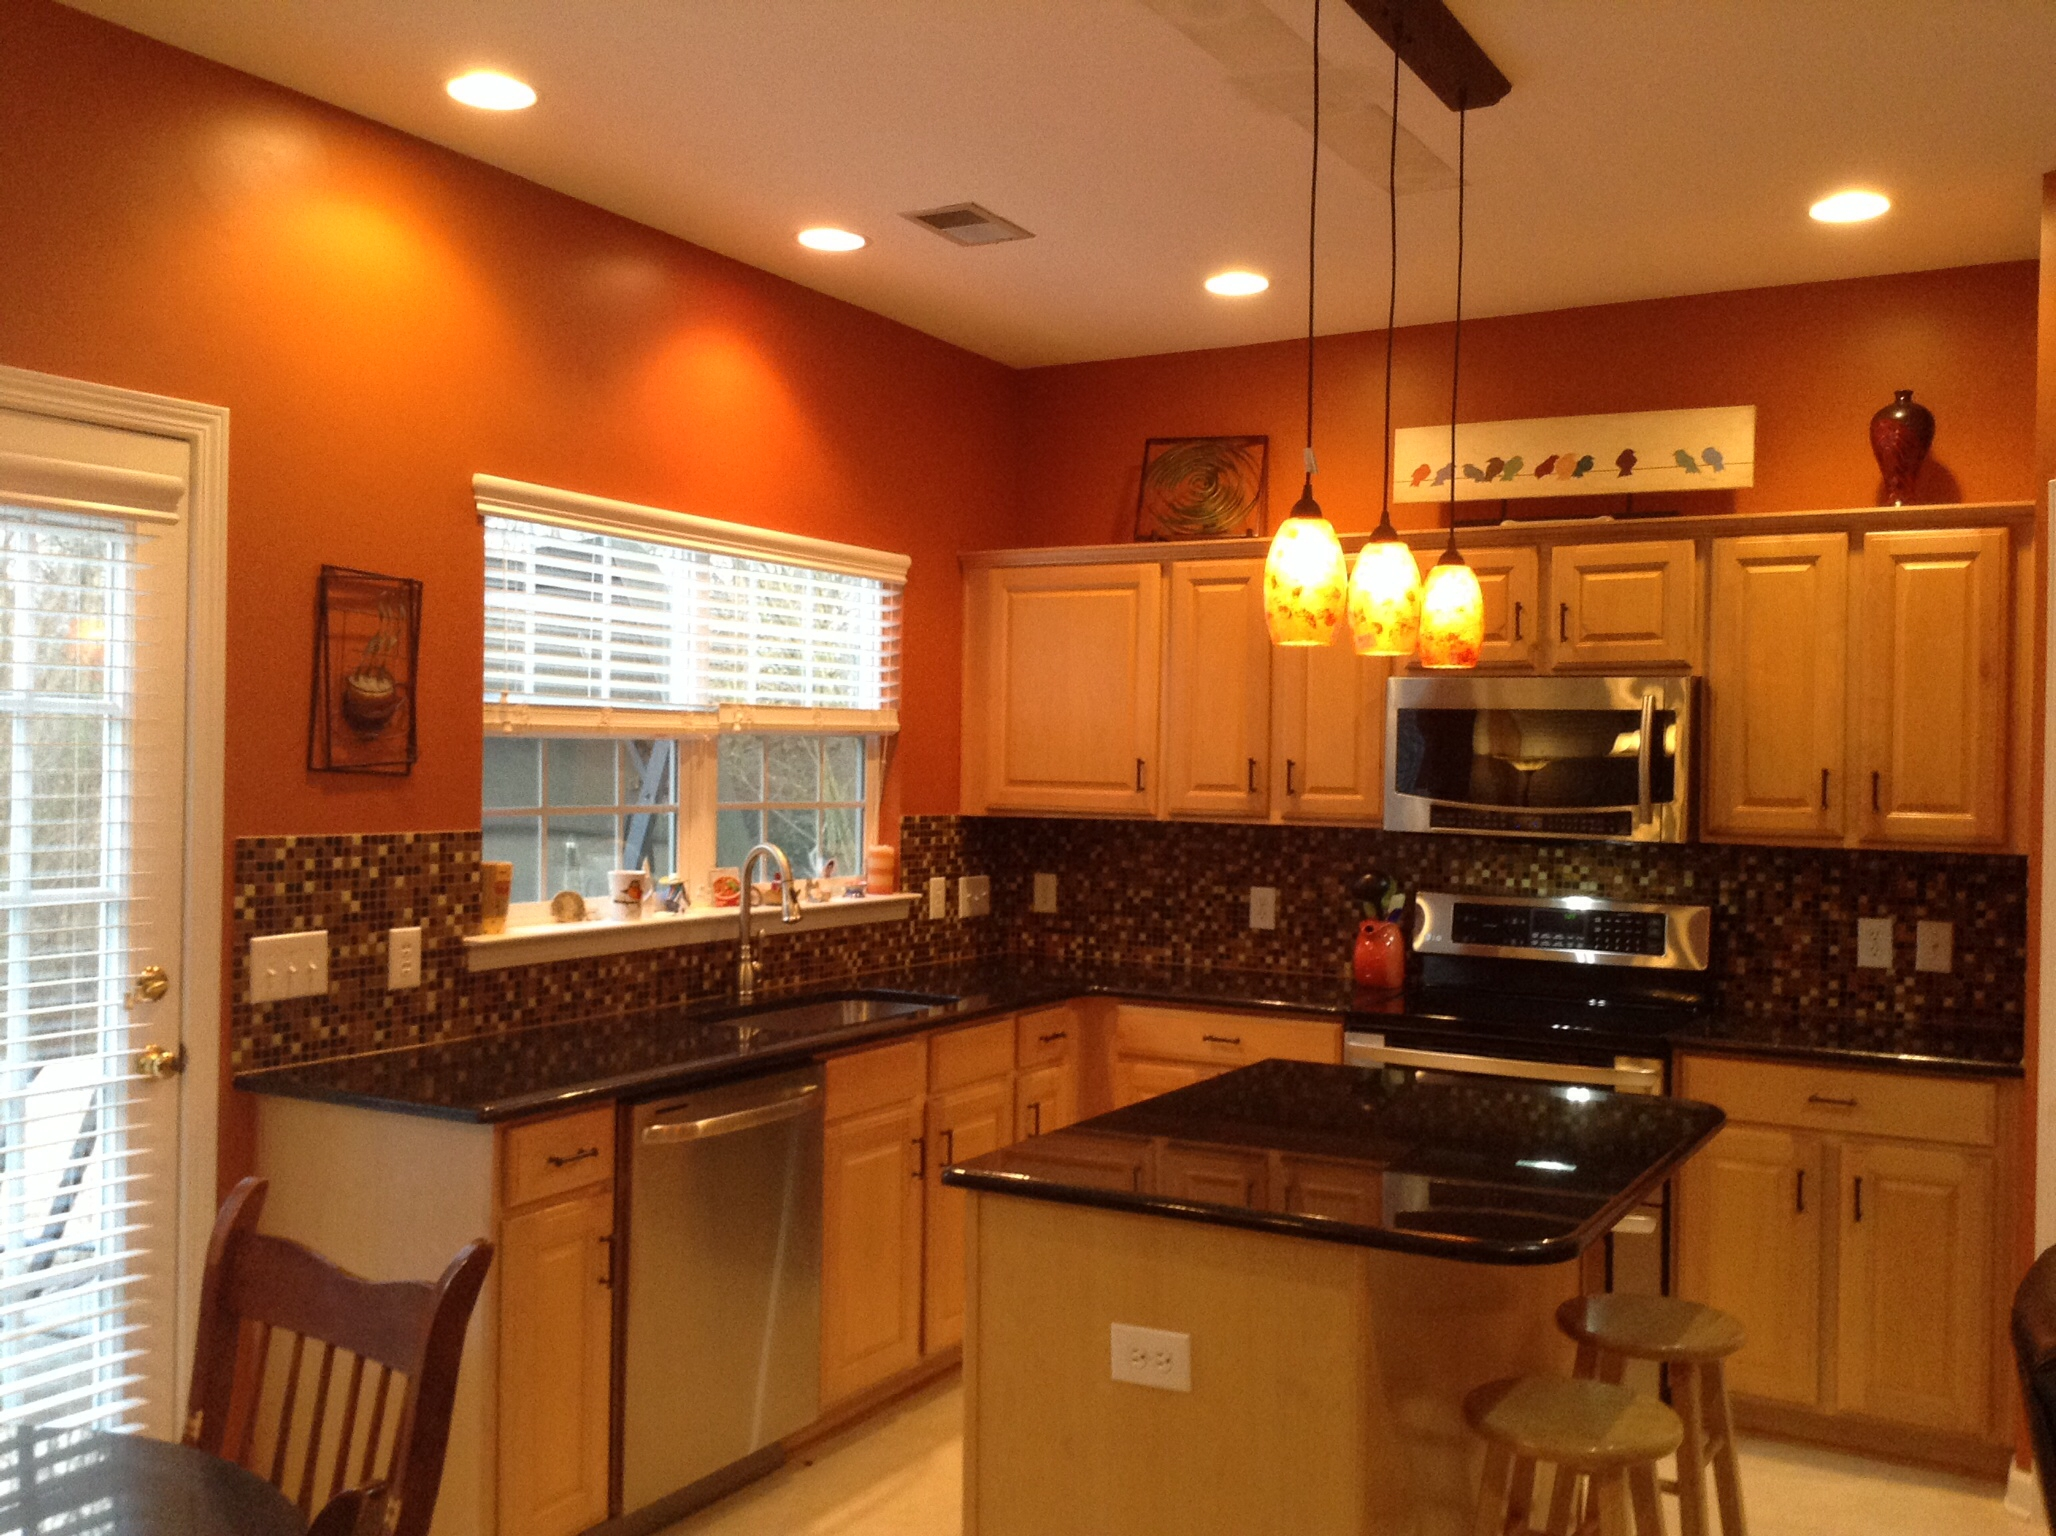 Burnt Orange Kitchen Decorating Ideas2056 X 1536